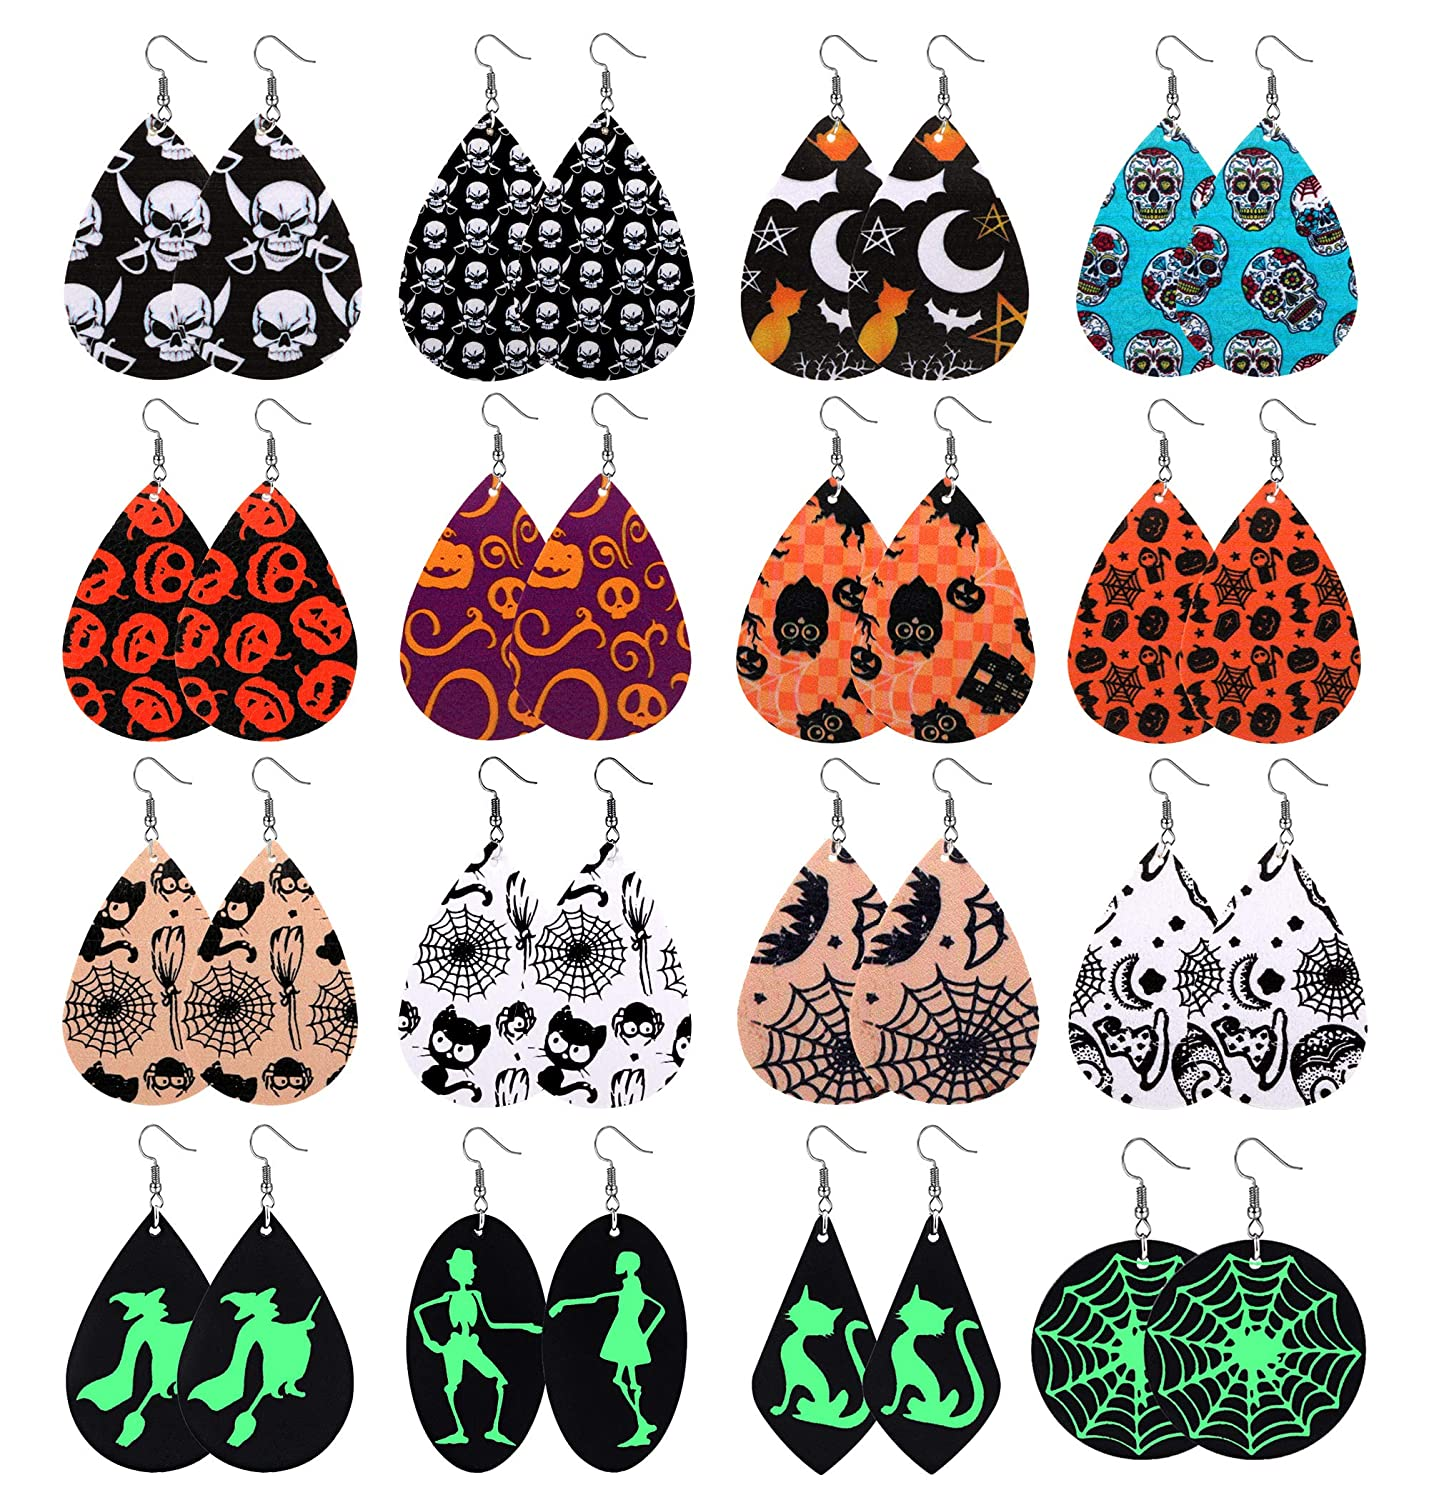 Anlsen 16 Pairs Leather Earrings for Women Teardrop Leaf Print Petal Leopard Flower Lightweight Drop Dangle Leather Earring Set